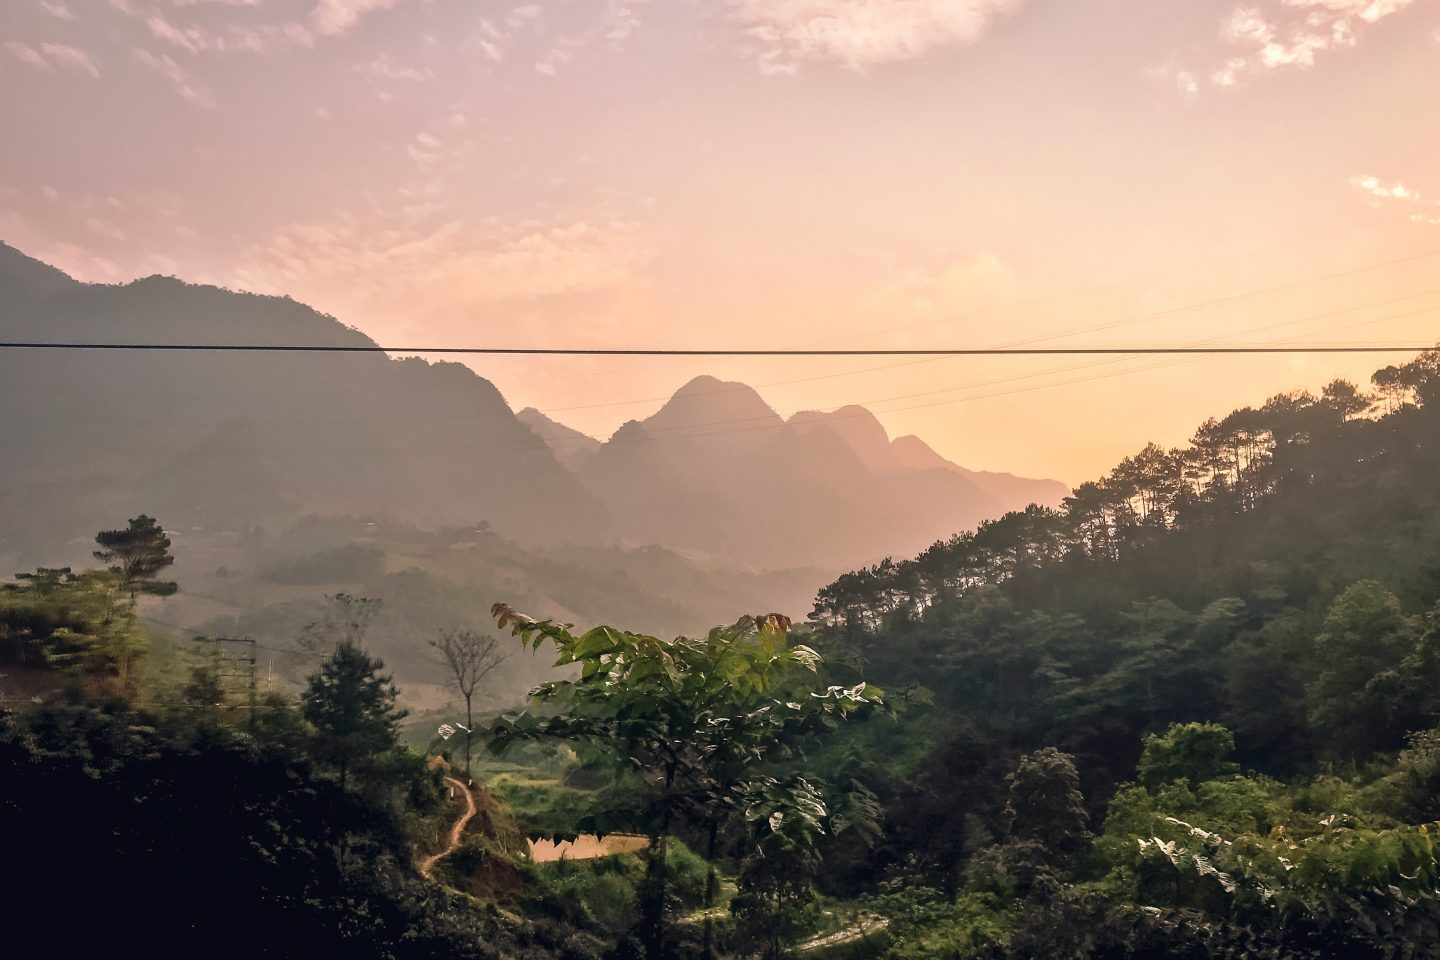 Hà Giang Loop: Sunset over the mountains